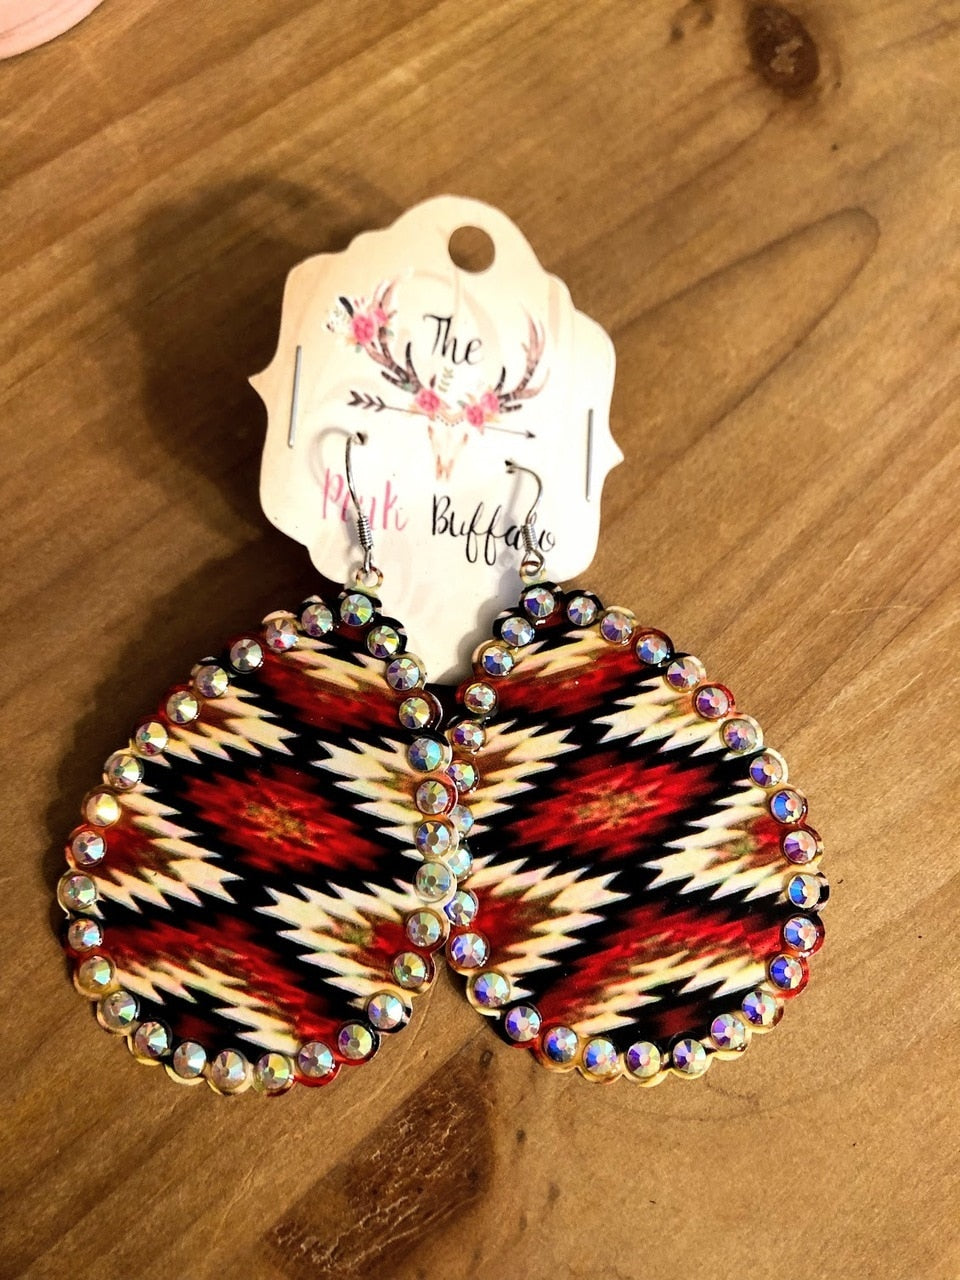 Aztec Zig Zag Earrings - The Pink Buffalo,LLC